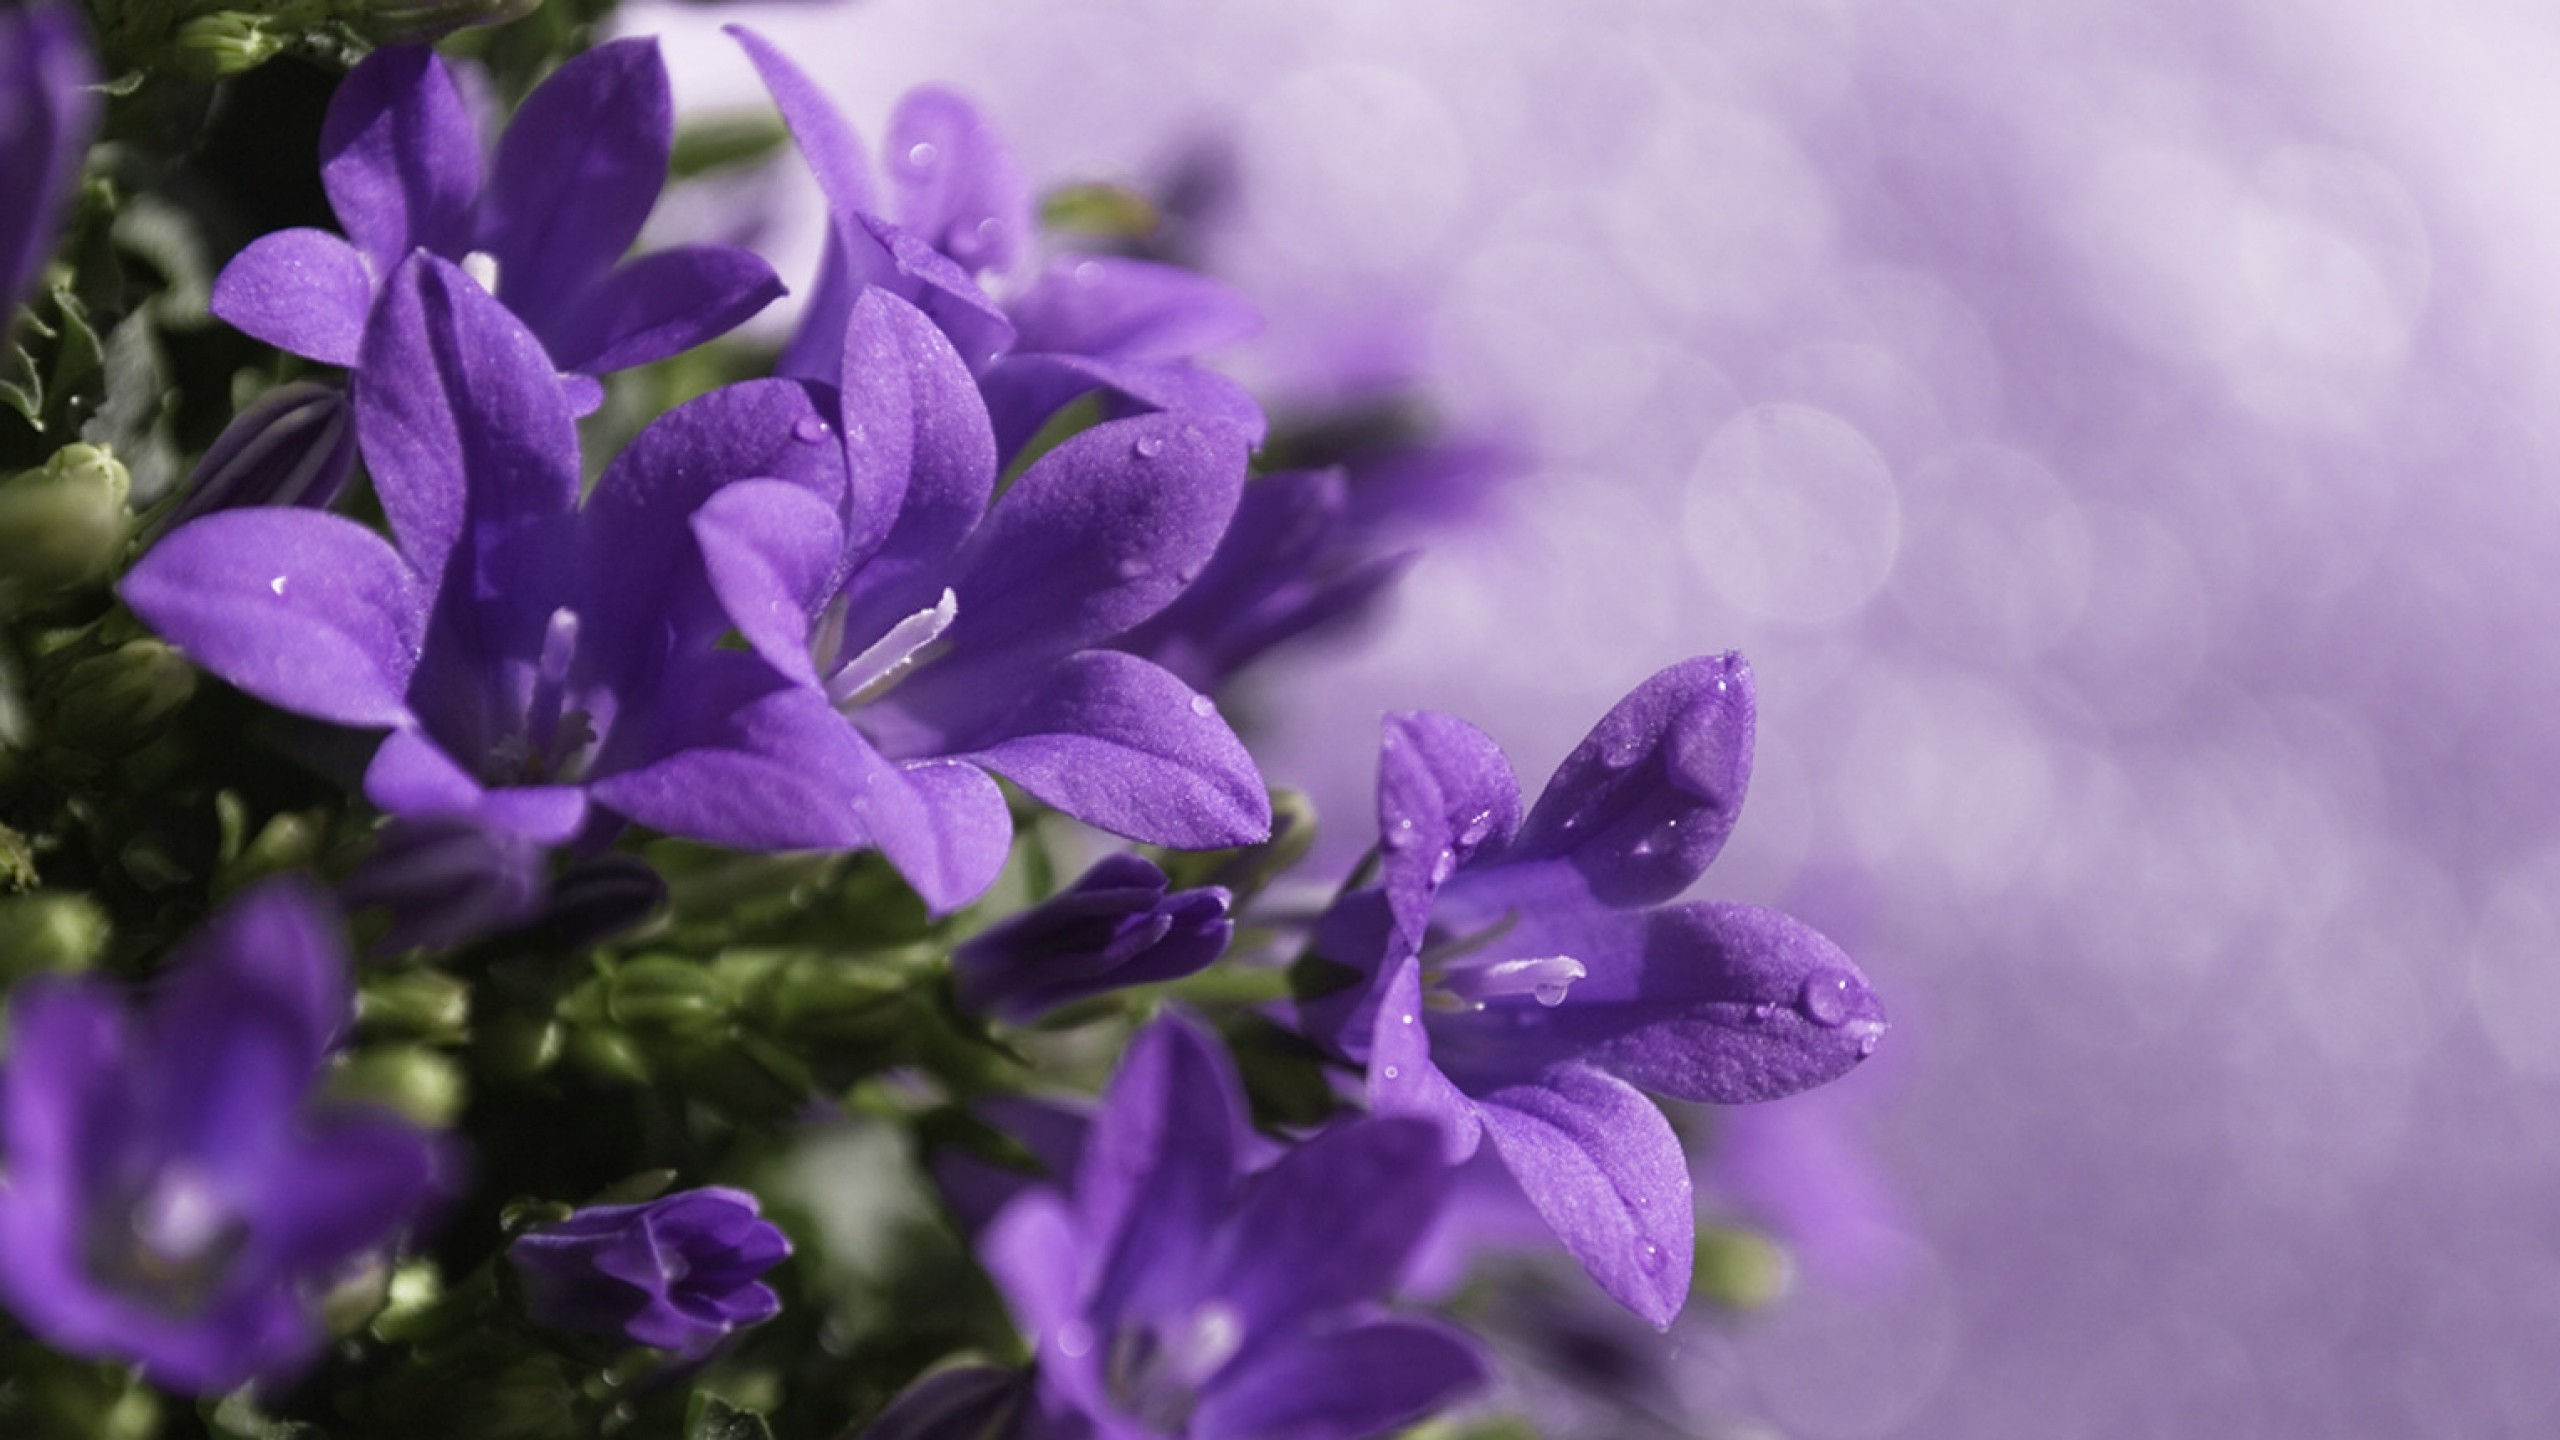 Purple Flower Background (66+ images)